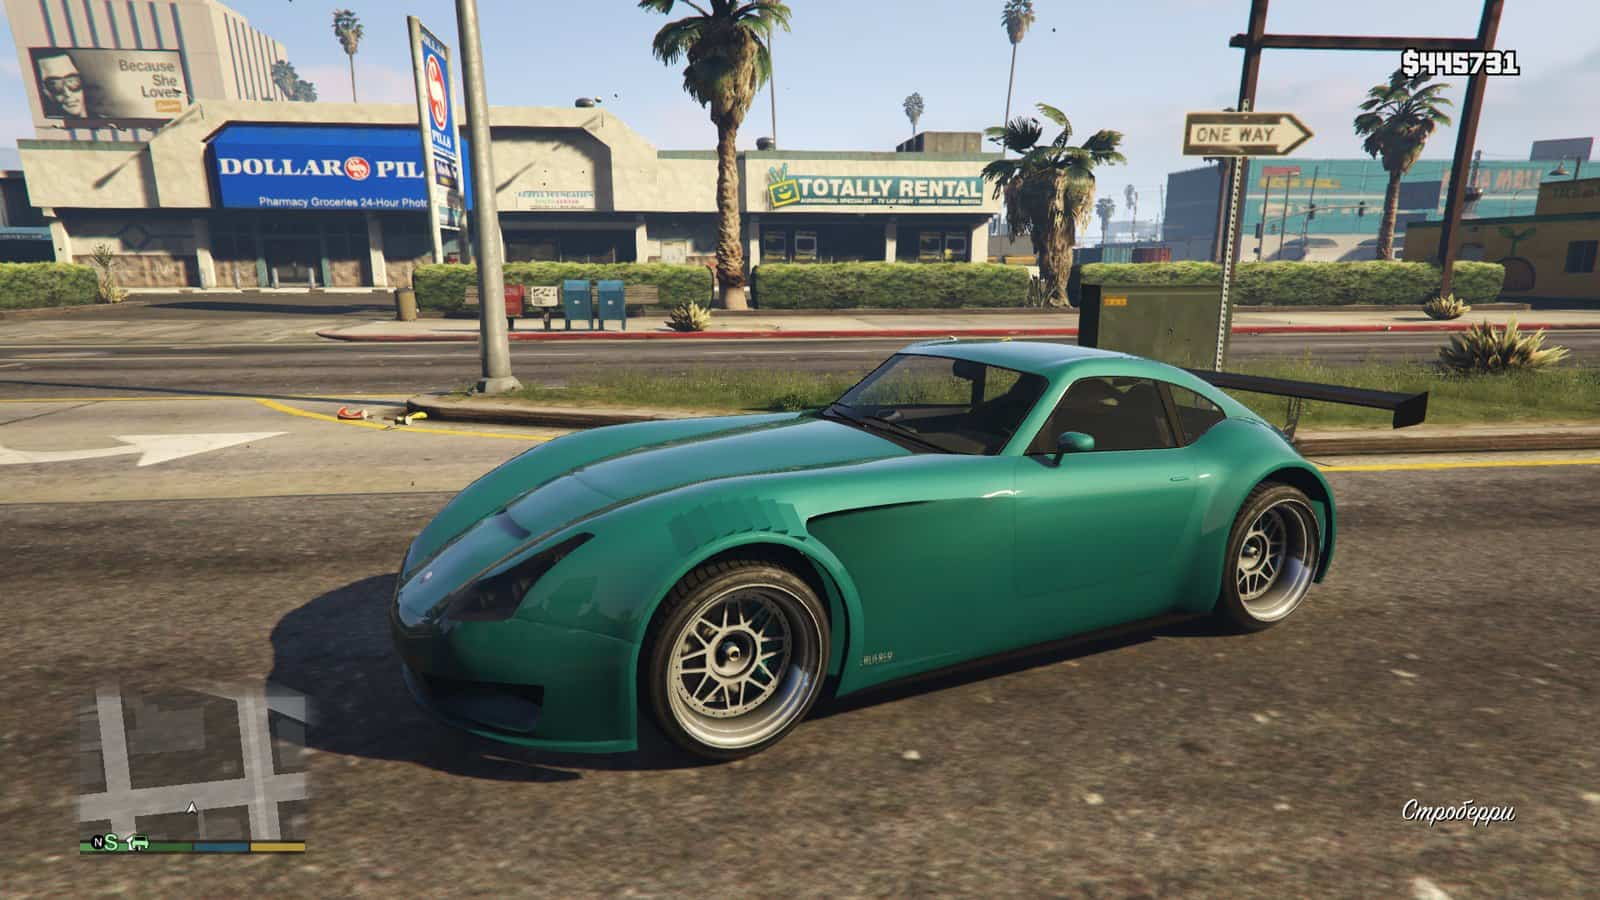 gta 5 dlc cars in story mode pc